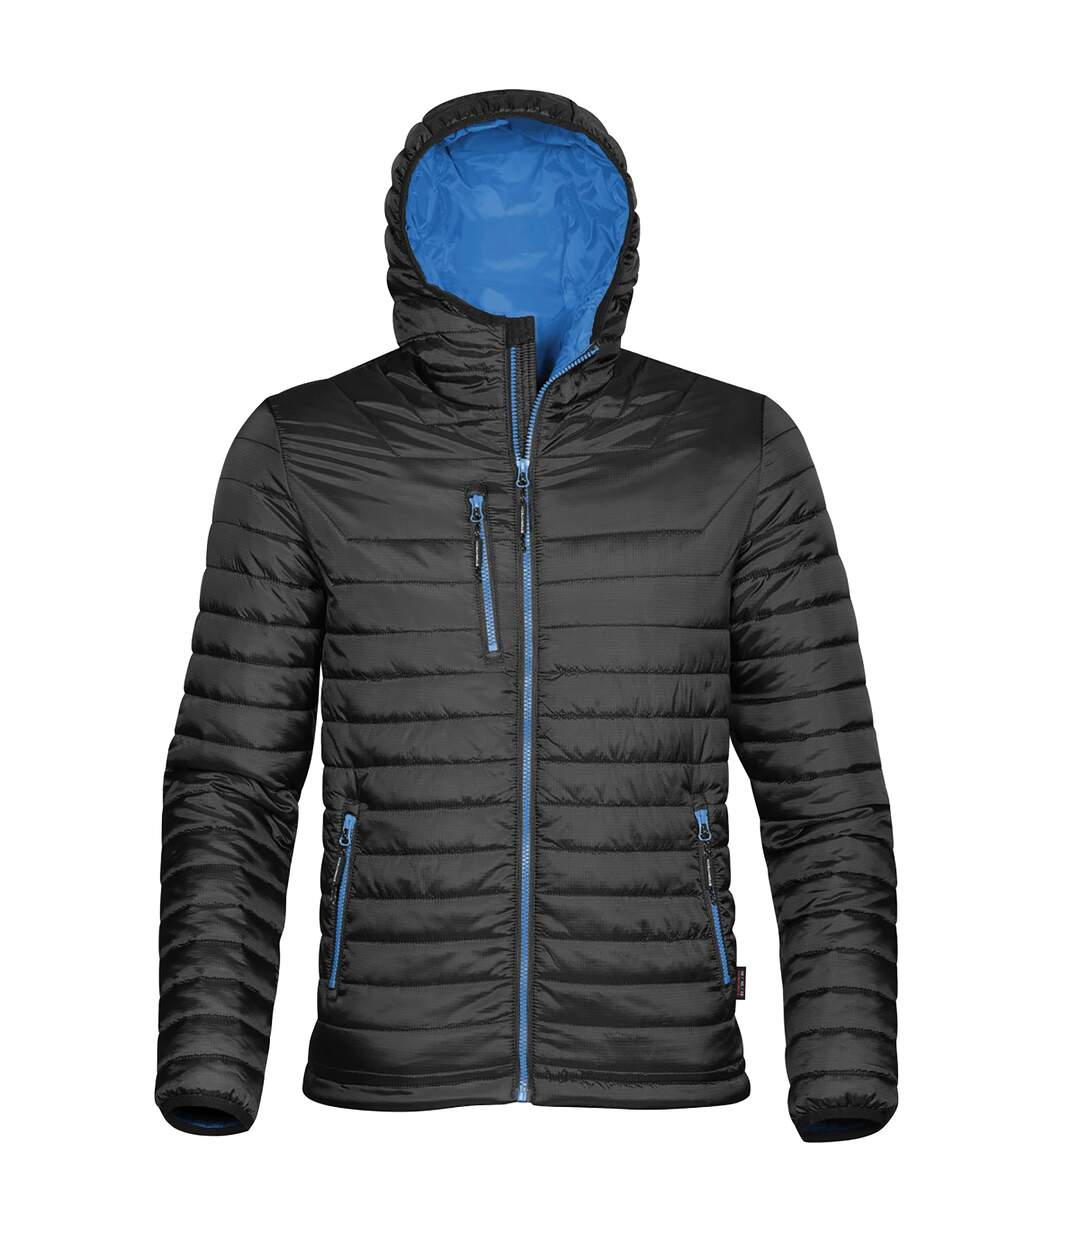 Stormtech Mens Gravity Hooded Thermal Winter Jacket (Durable Water Resistant) (Black/Marine Blue) - UTBC3064